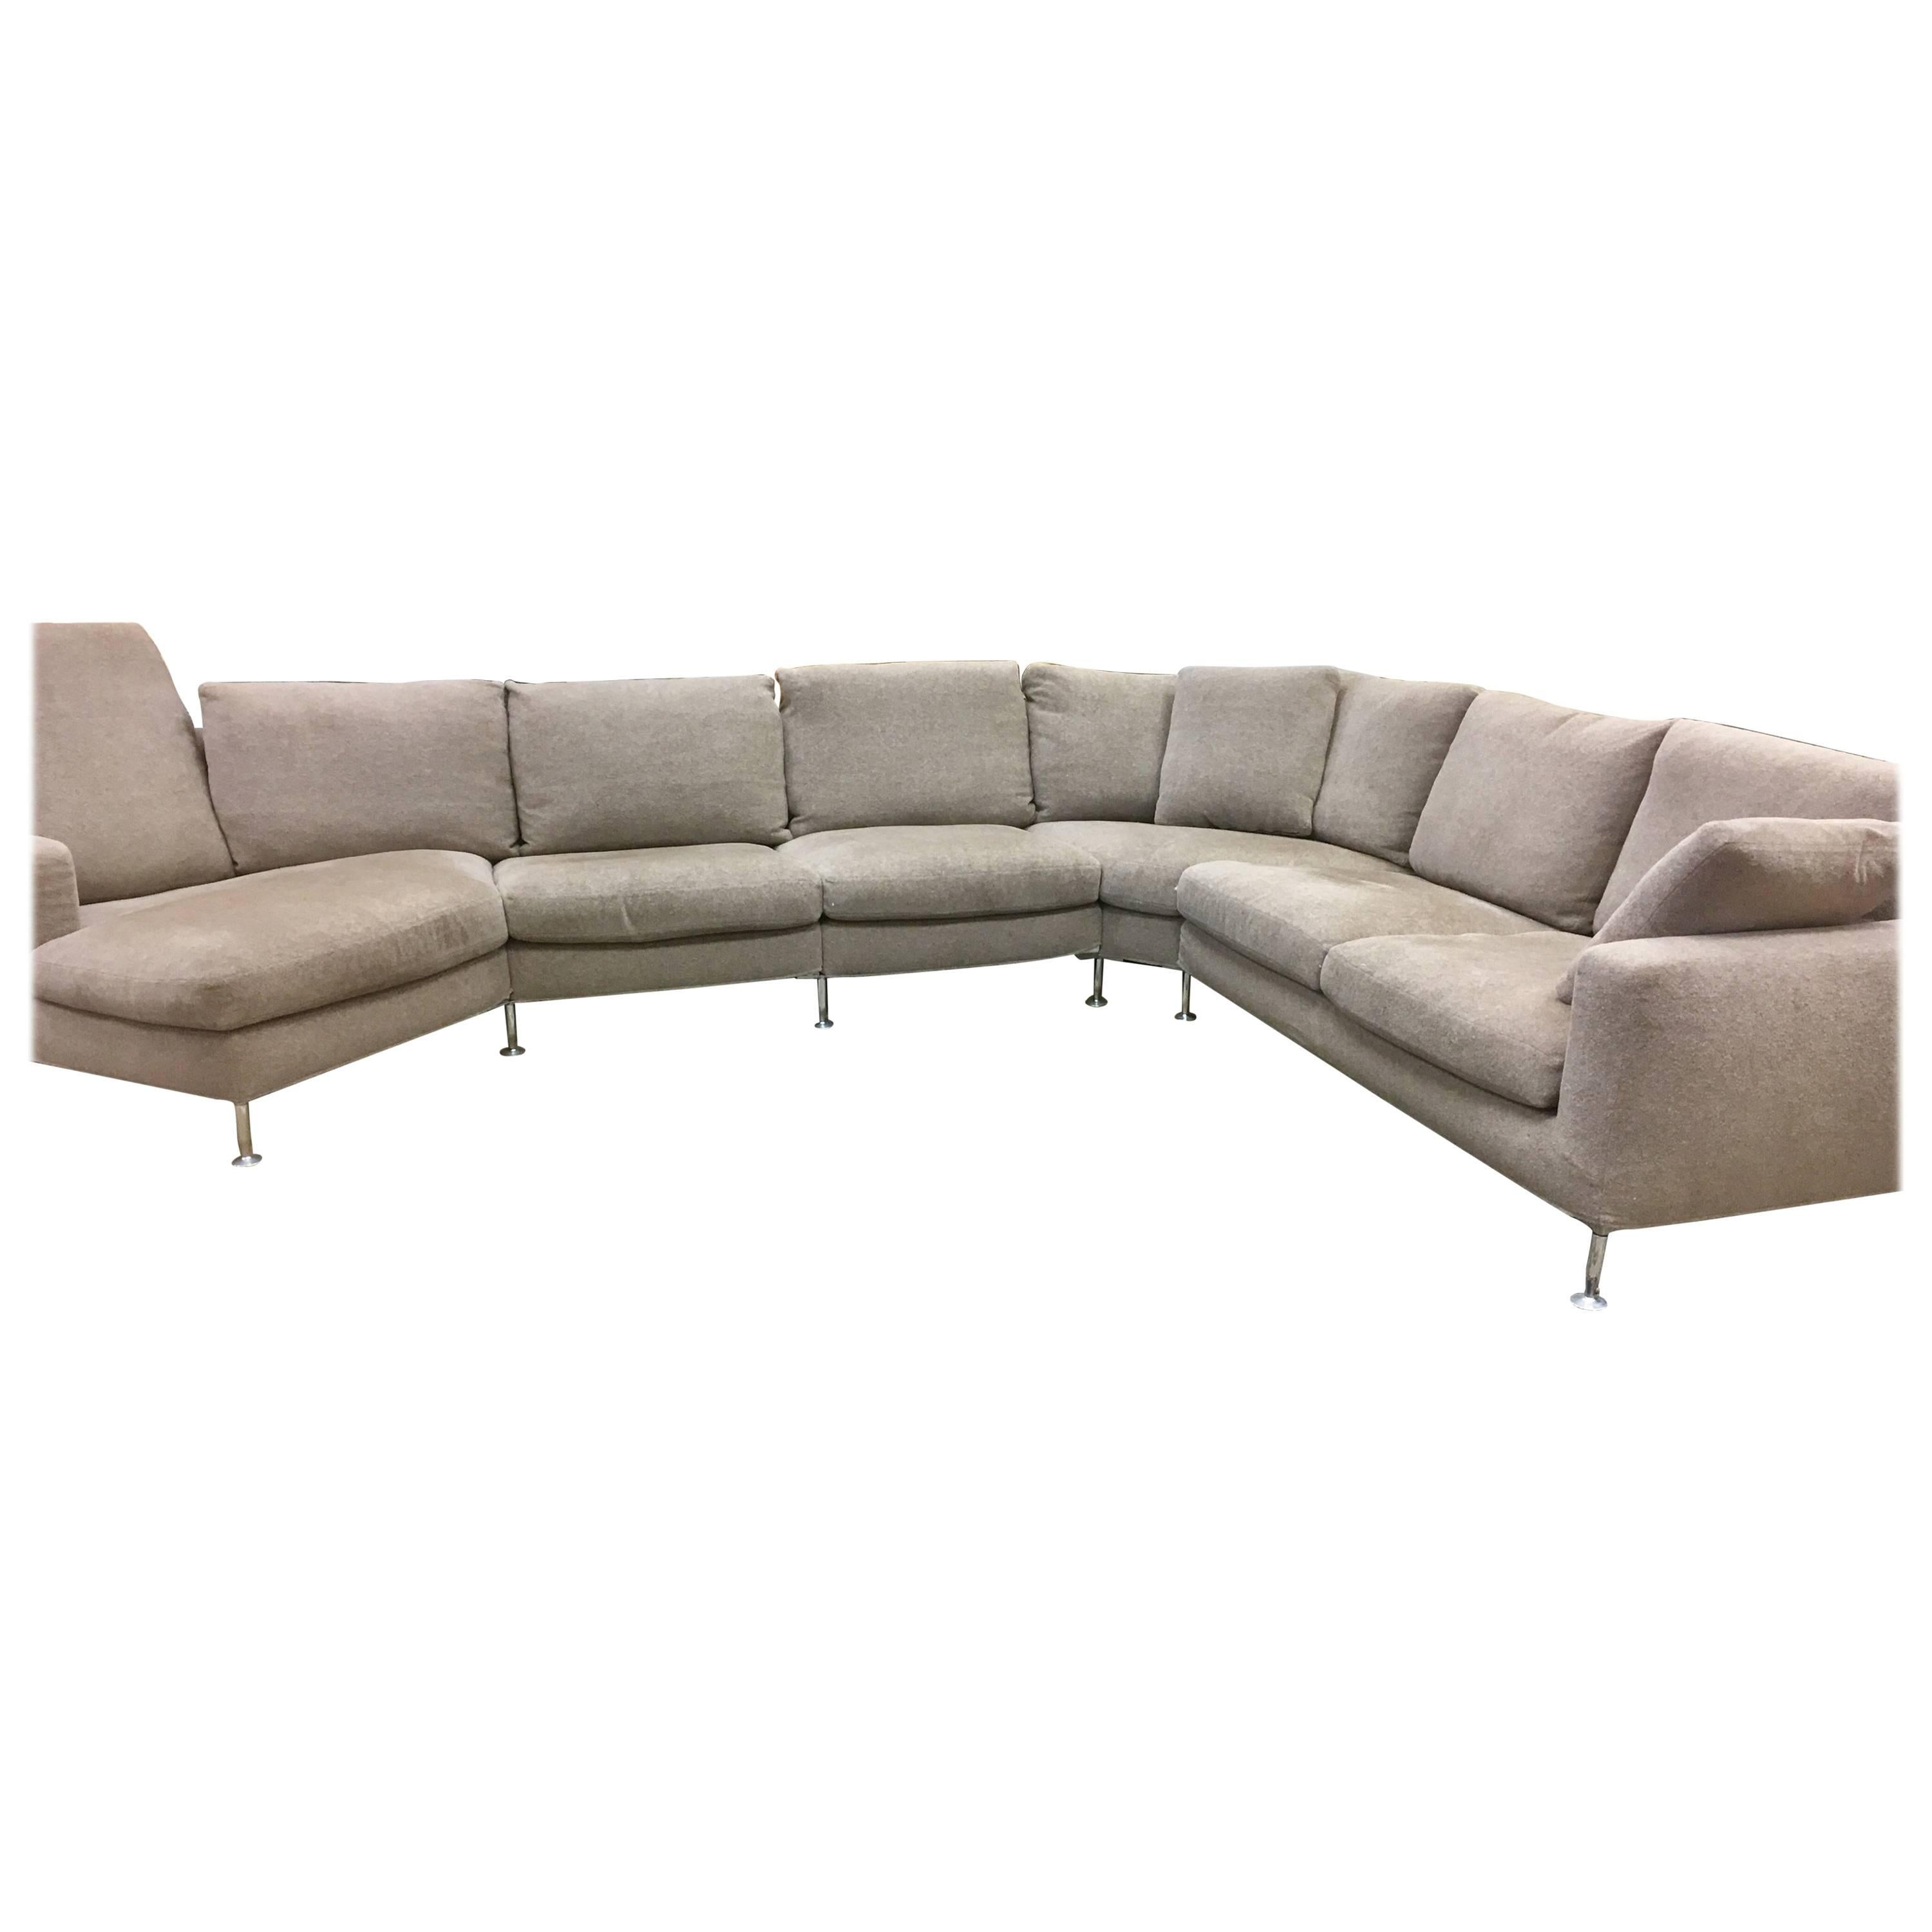 Bu0026B Italia Harry Sectional Sofa by Antonio Citterio  sc 1 st  1stDibs : flexform sectional sofa - Sectionals, Sofas & Couches